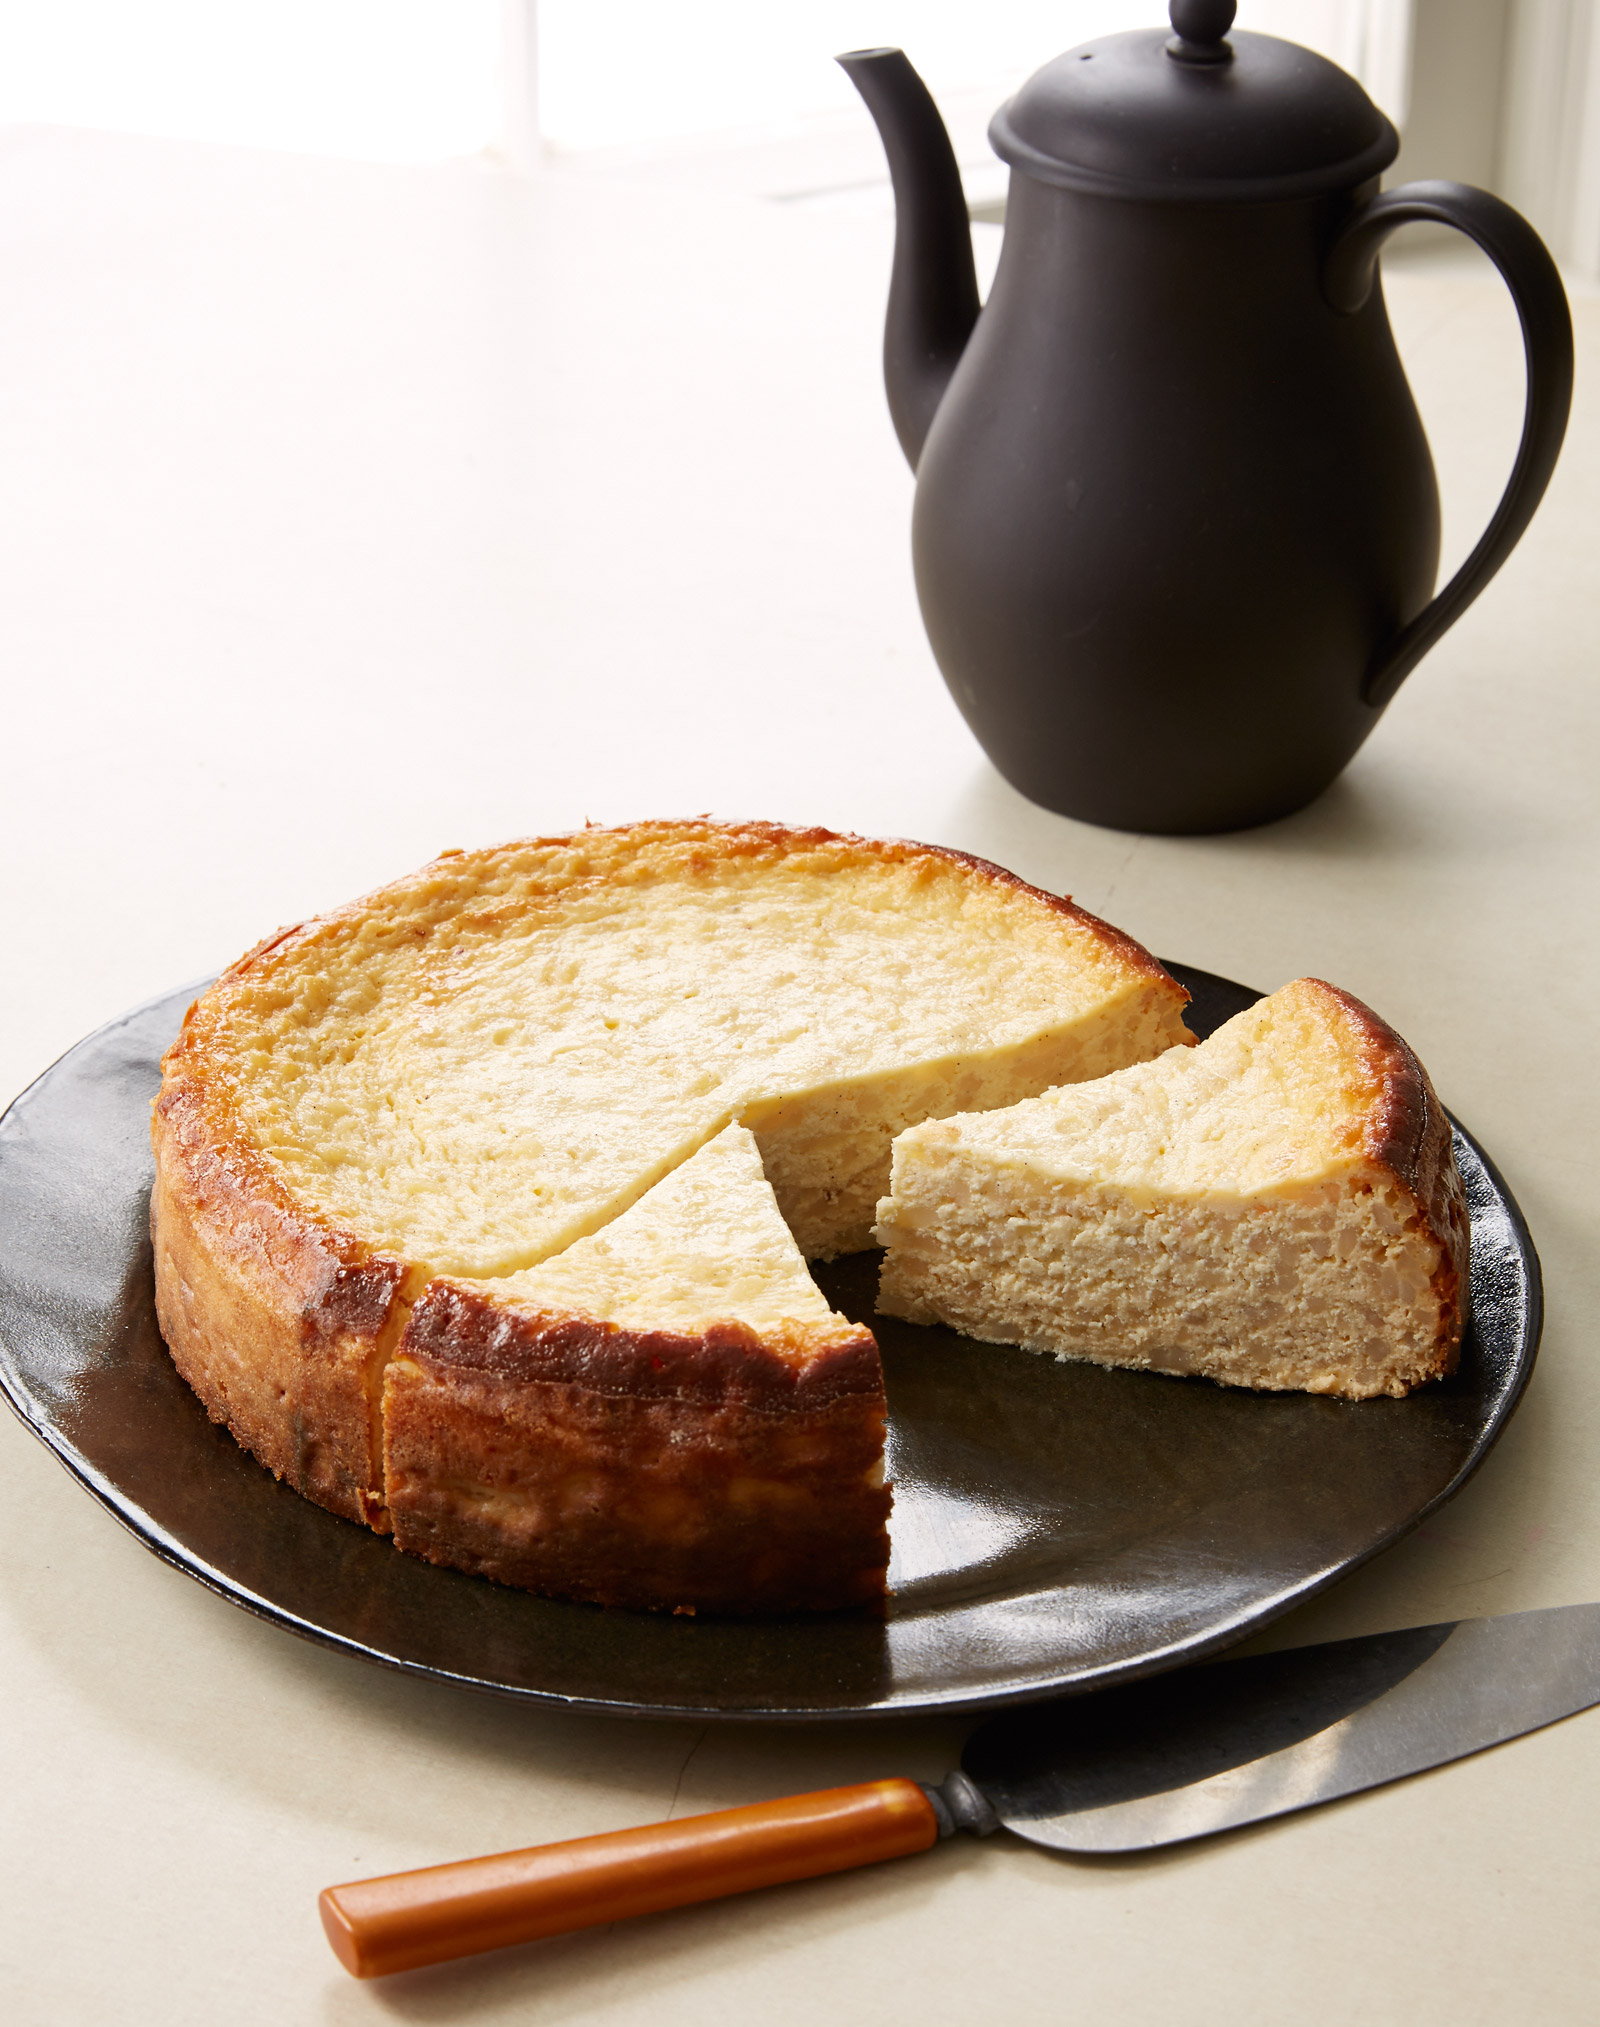 egg and rice gluten free cake with lemon